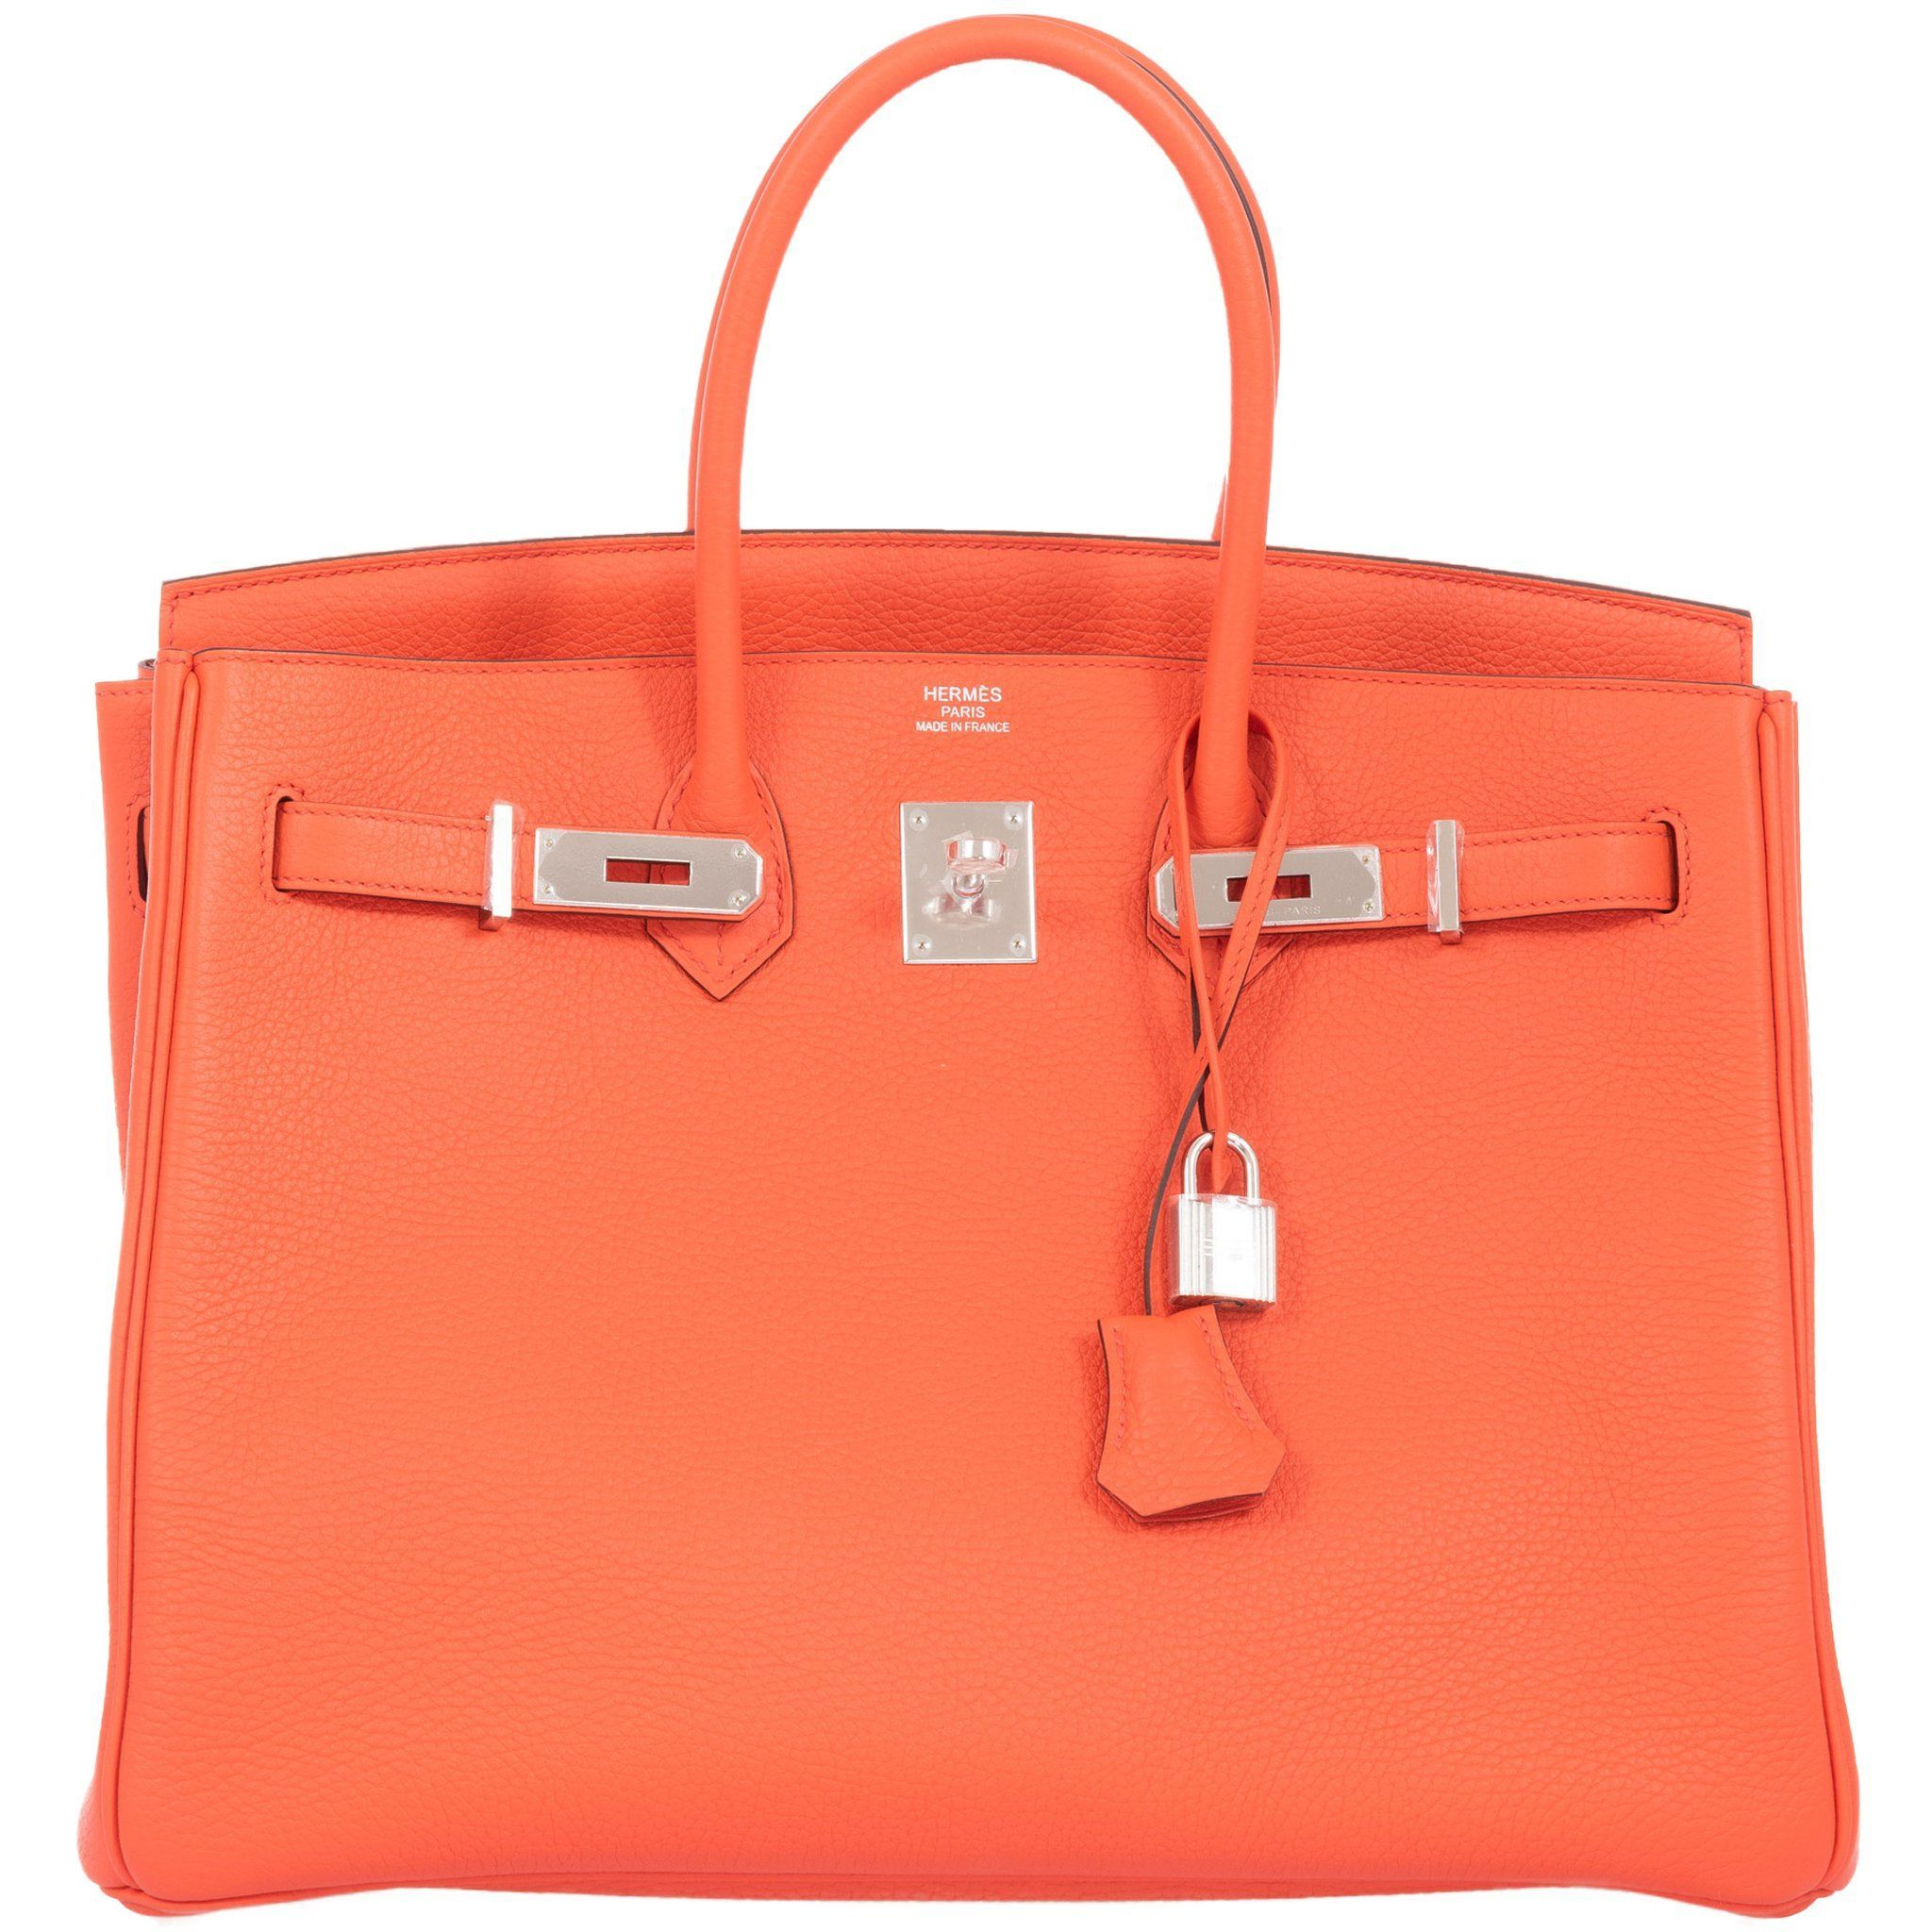 Hermes Birkin 35 Orange Poppy Clemence Palladium Hardware Janefinds Hermes Birkin Birkin Hermes Handbags